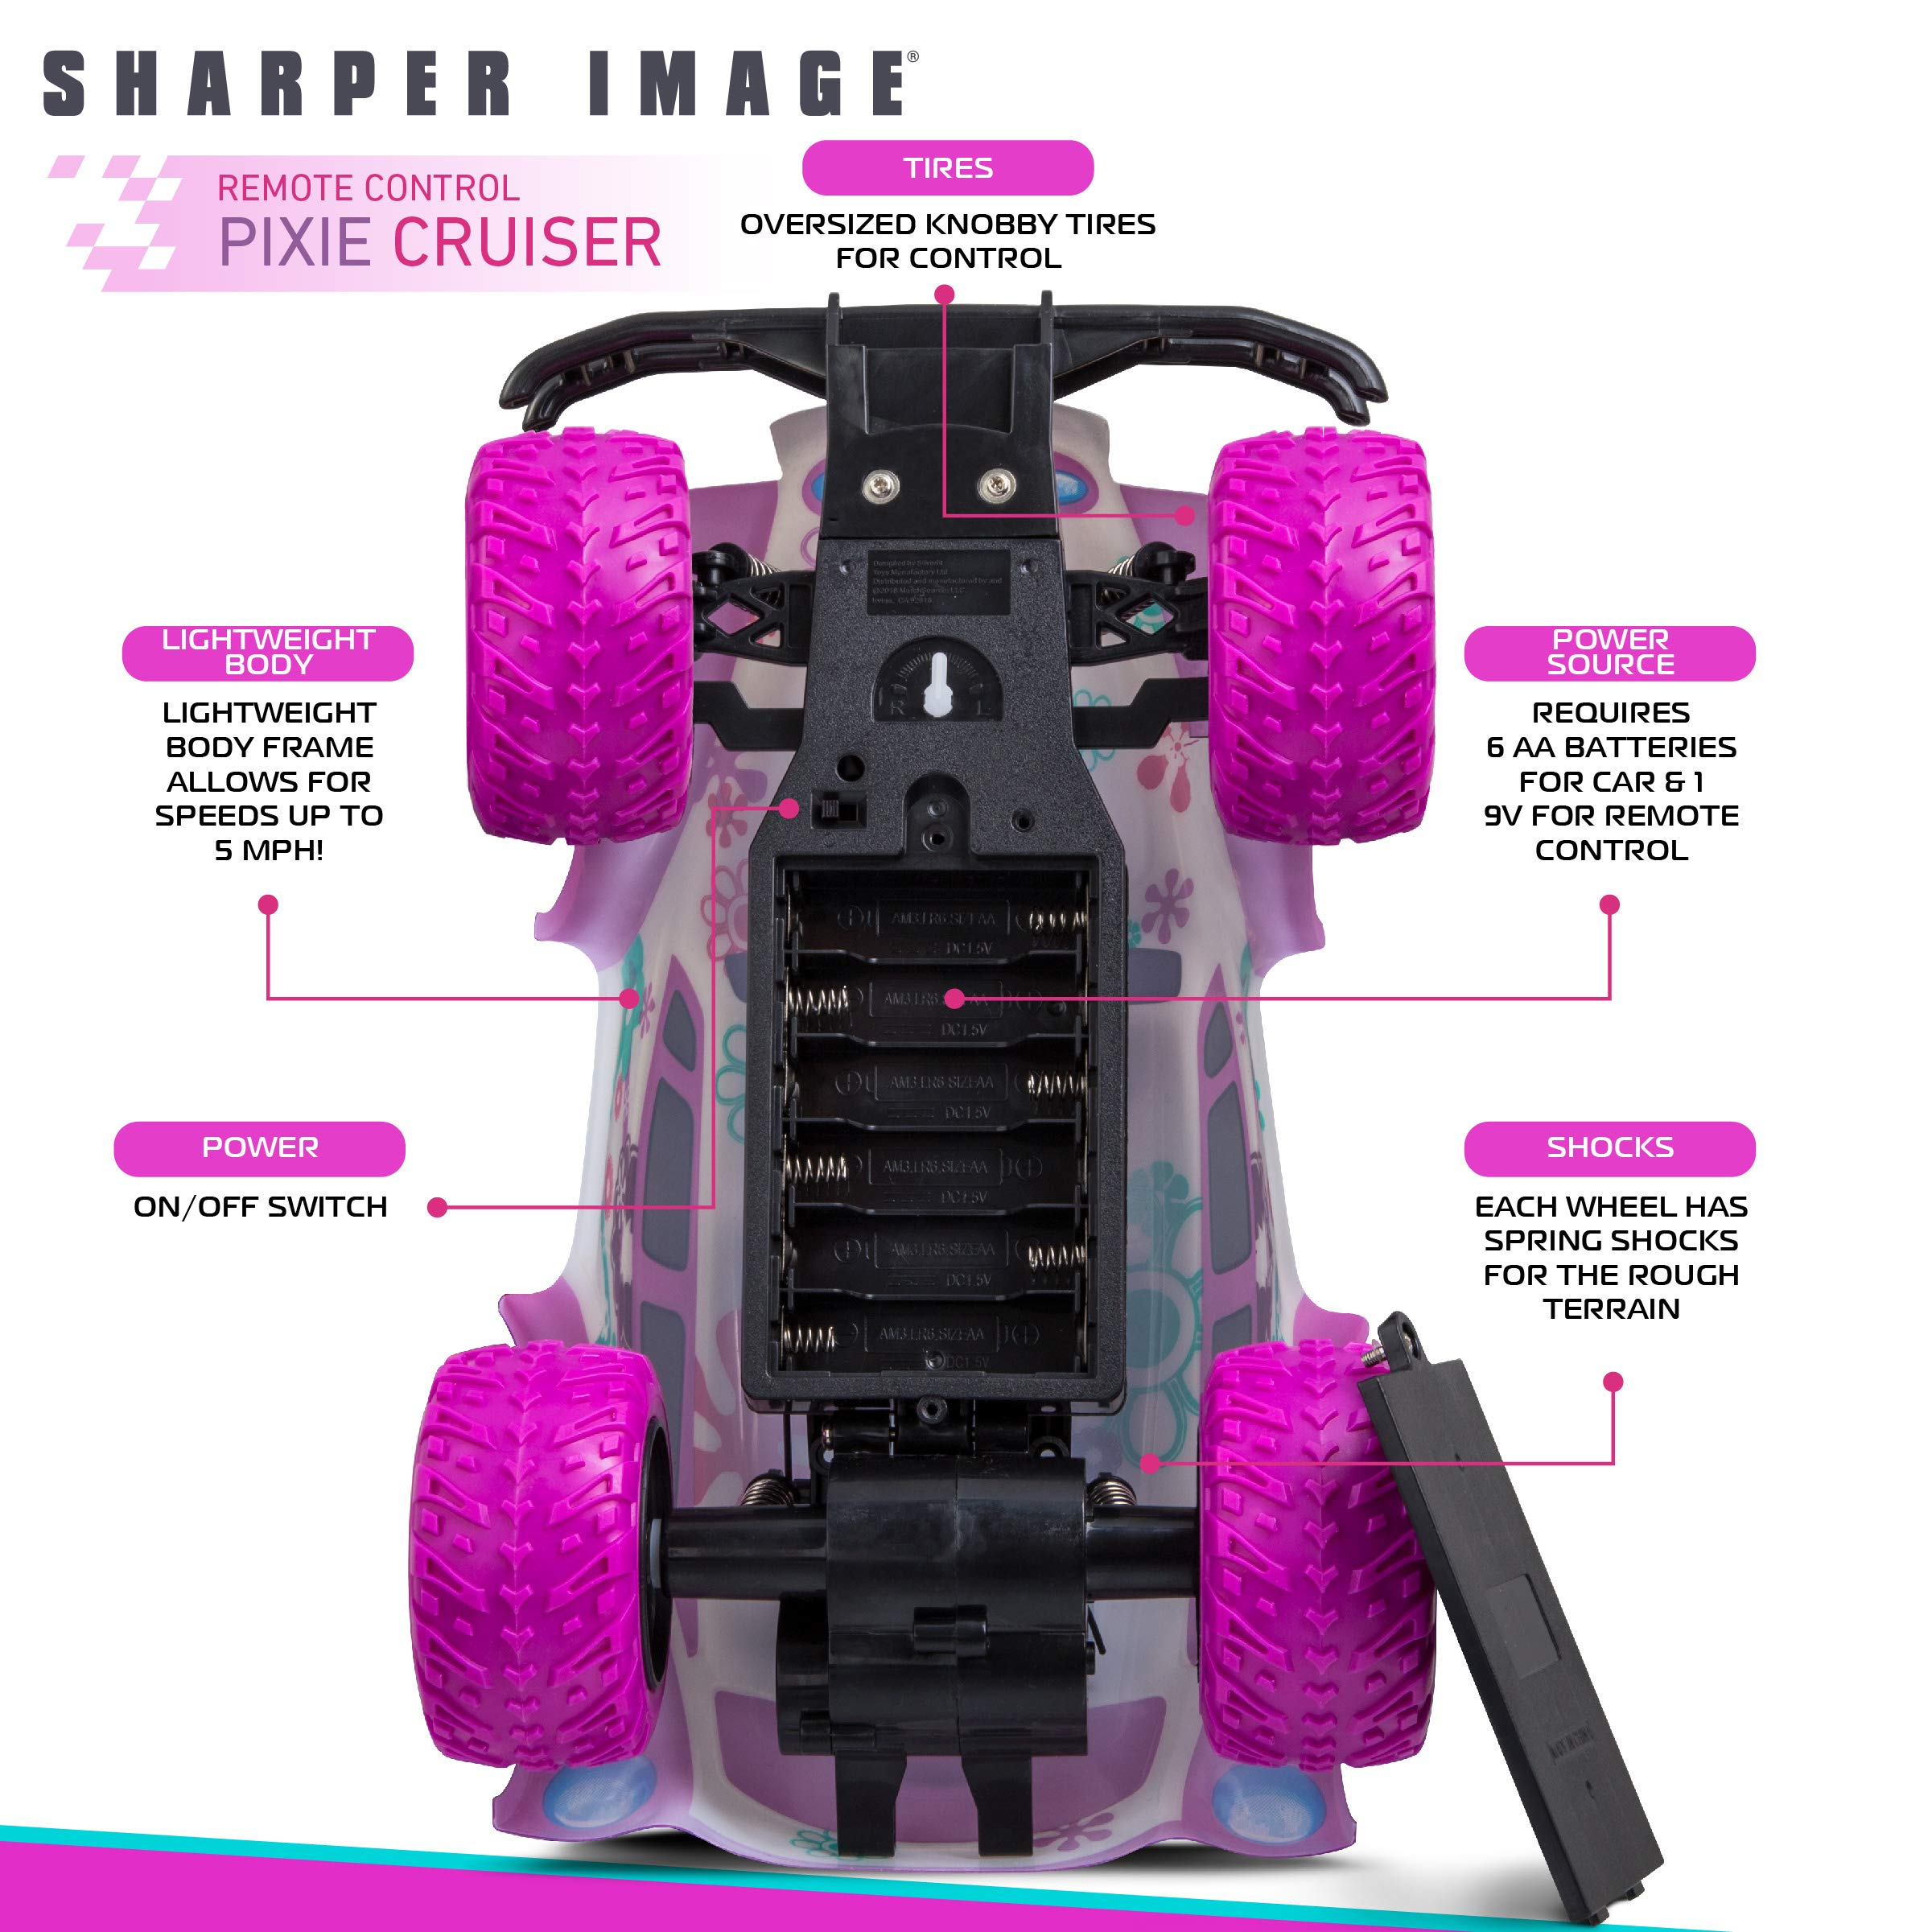 SHARPER IMAGE Pixie Cruiser Pink and Purple RC Remote Control Car Toy for Girls with Off-Road Grip Tires; Princess Style Big Buggy Crawler w/ Flowers Design and Shocks, Race Up to 5 MPH, Ages 6 Year + by Sharper Image (Image #4)